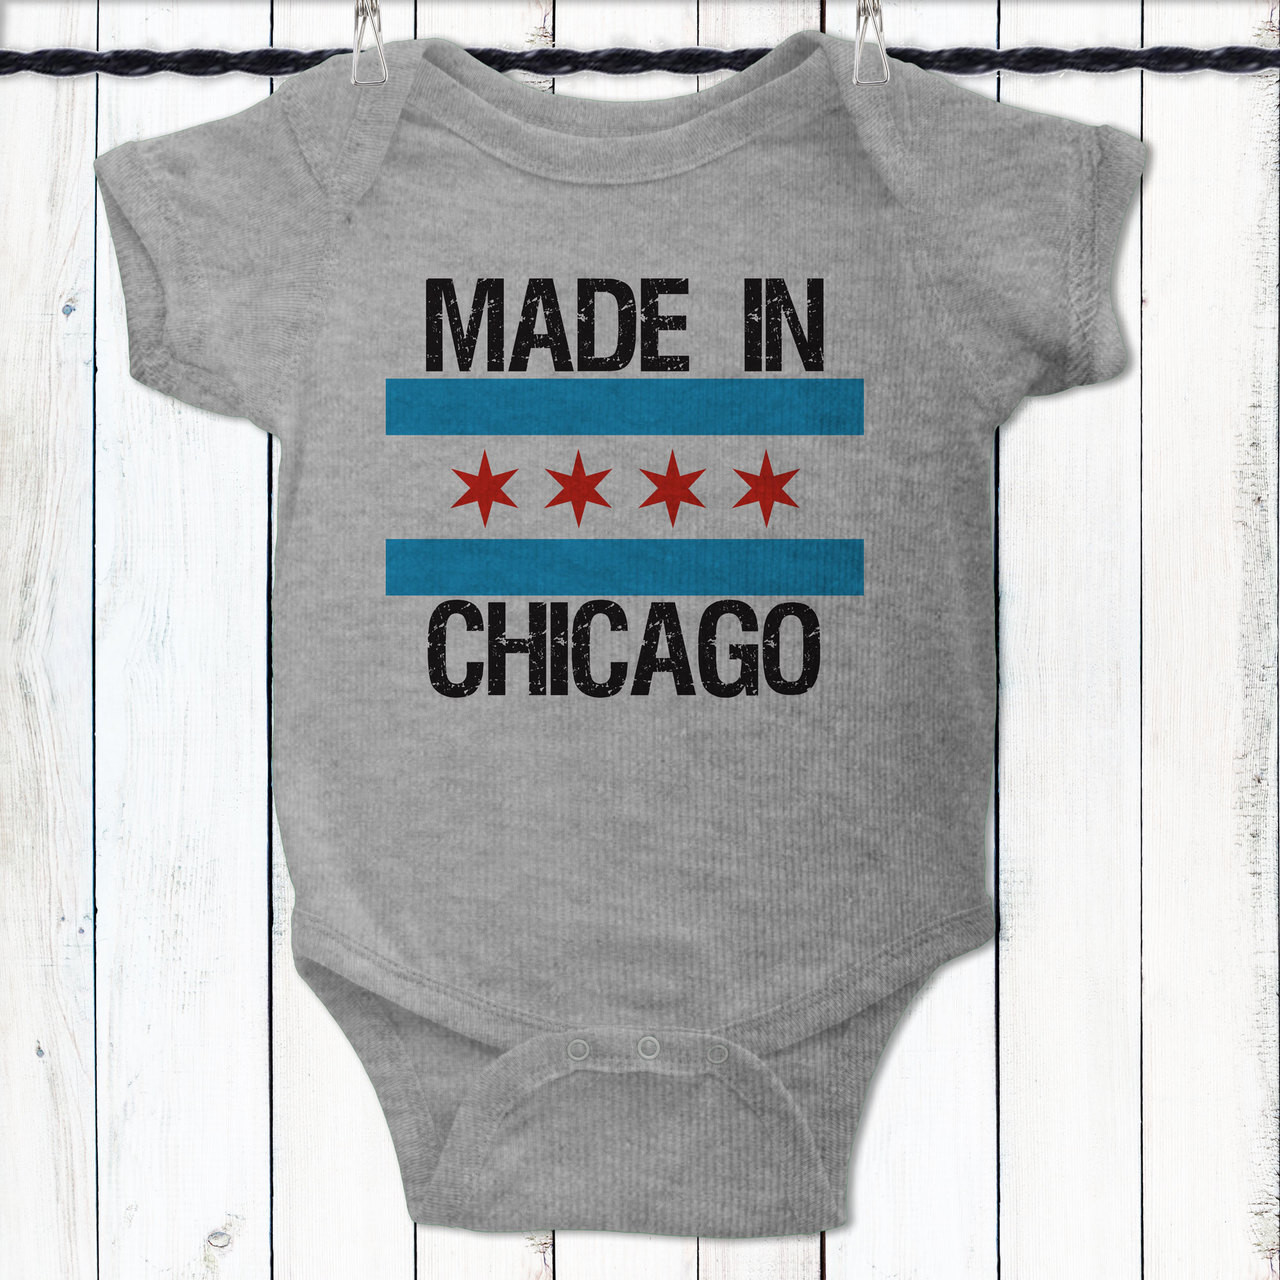 6c3c289c92cc0 Personalized Made In Chicago Baby Shirt